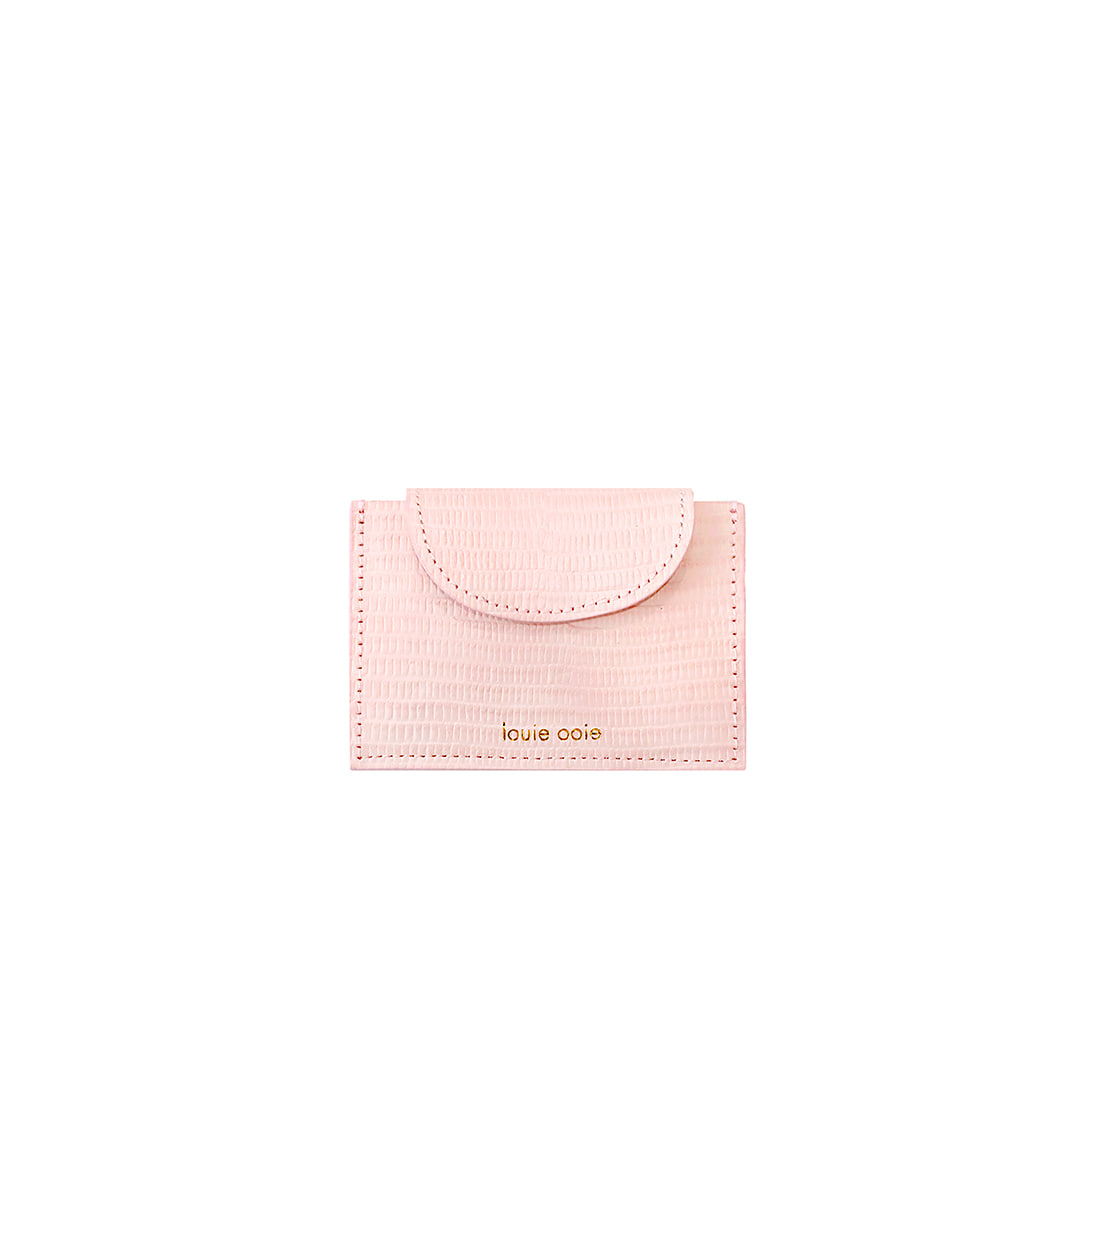 betty card wallet - pink embo